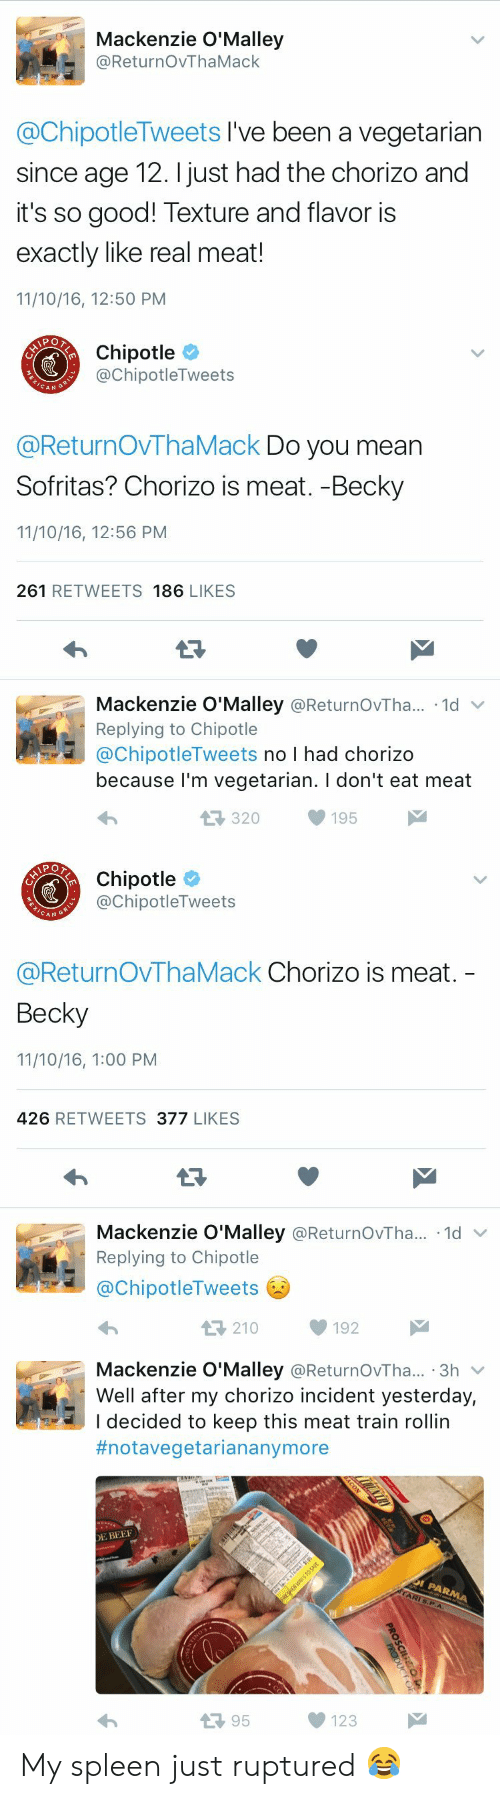 mackenzie: Mackenzie O'Malley  @ReturnOvThaMack  @ChipotleTweets I've been a vegetarian  since age 12. I just had the chorizo and  it's so good! Texture and flavor is  exactly like real meat!  11/10/16, 12:50 PM   Chipotle  @ChipotleTweets  CAN  @ReturnOVThaMack Do you mean  Sofritas? Chorizo is meat. -Becky  11/10/16, 12:56 PM  261 RETWEETS 186 LIKES  Mackenzie O'Malley @ReturnOvTha.. 1d  Replying to Chipotle  @ChipotleTweets no I had chorizo  because l'm vegetarian. I don't eat meat  320195   Chipotle  @ChipotleTweets  CAN G  @ReturnOvThaMack Chorizo is meat.  Becky  11/10/16, 1:00 PM  426 RETWEETS 377 LIKES  Mackenzie O'Malley @ReturnOvTha...-1d ﹀  Replying to Chipotle  @ChipotleTweets  わ  210192   Mackenzie O'Malley @ReturnOvTha... 3h v  Well after my chorizo incident yesterday,  I decided to keep this meat train rollin  #notavegetariananymore  E BEE  13 95  123 My spleen just ruptured 😂